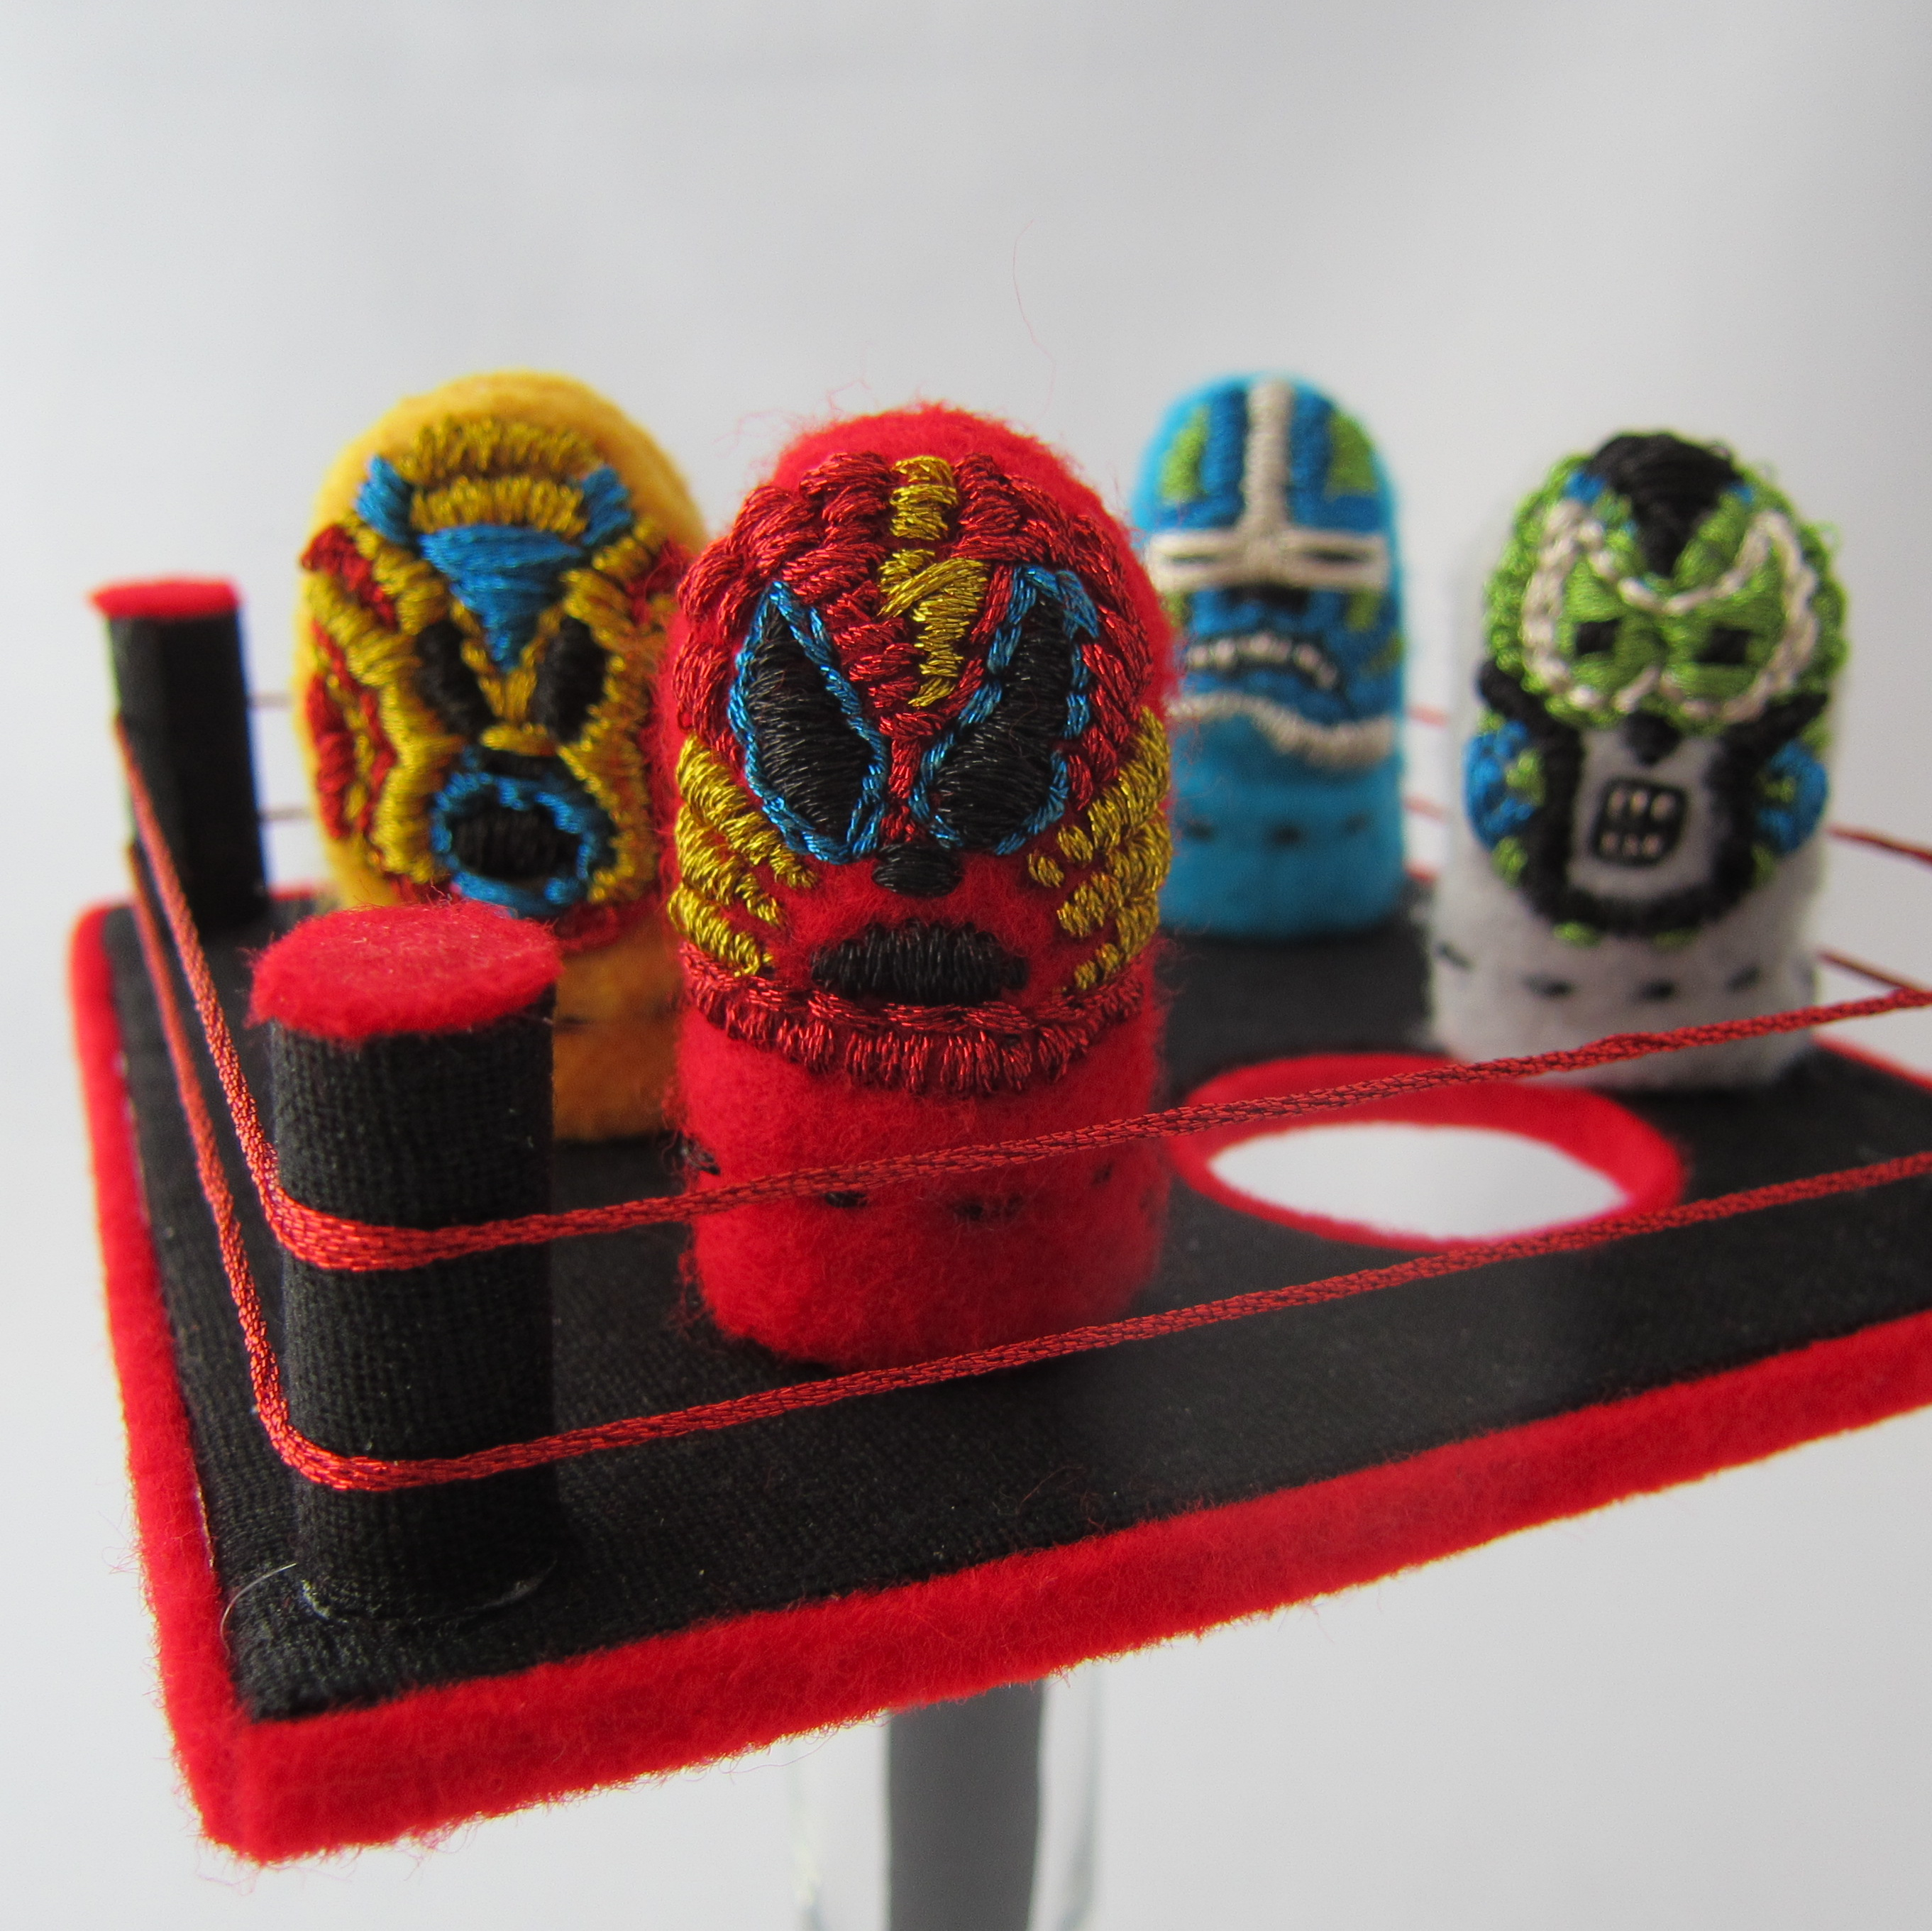 Mexican Thumb Wrestler Puppets and Arena